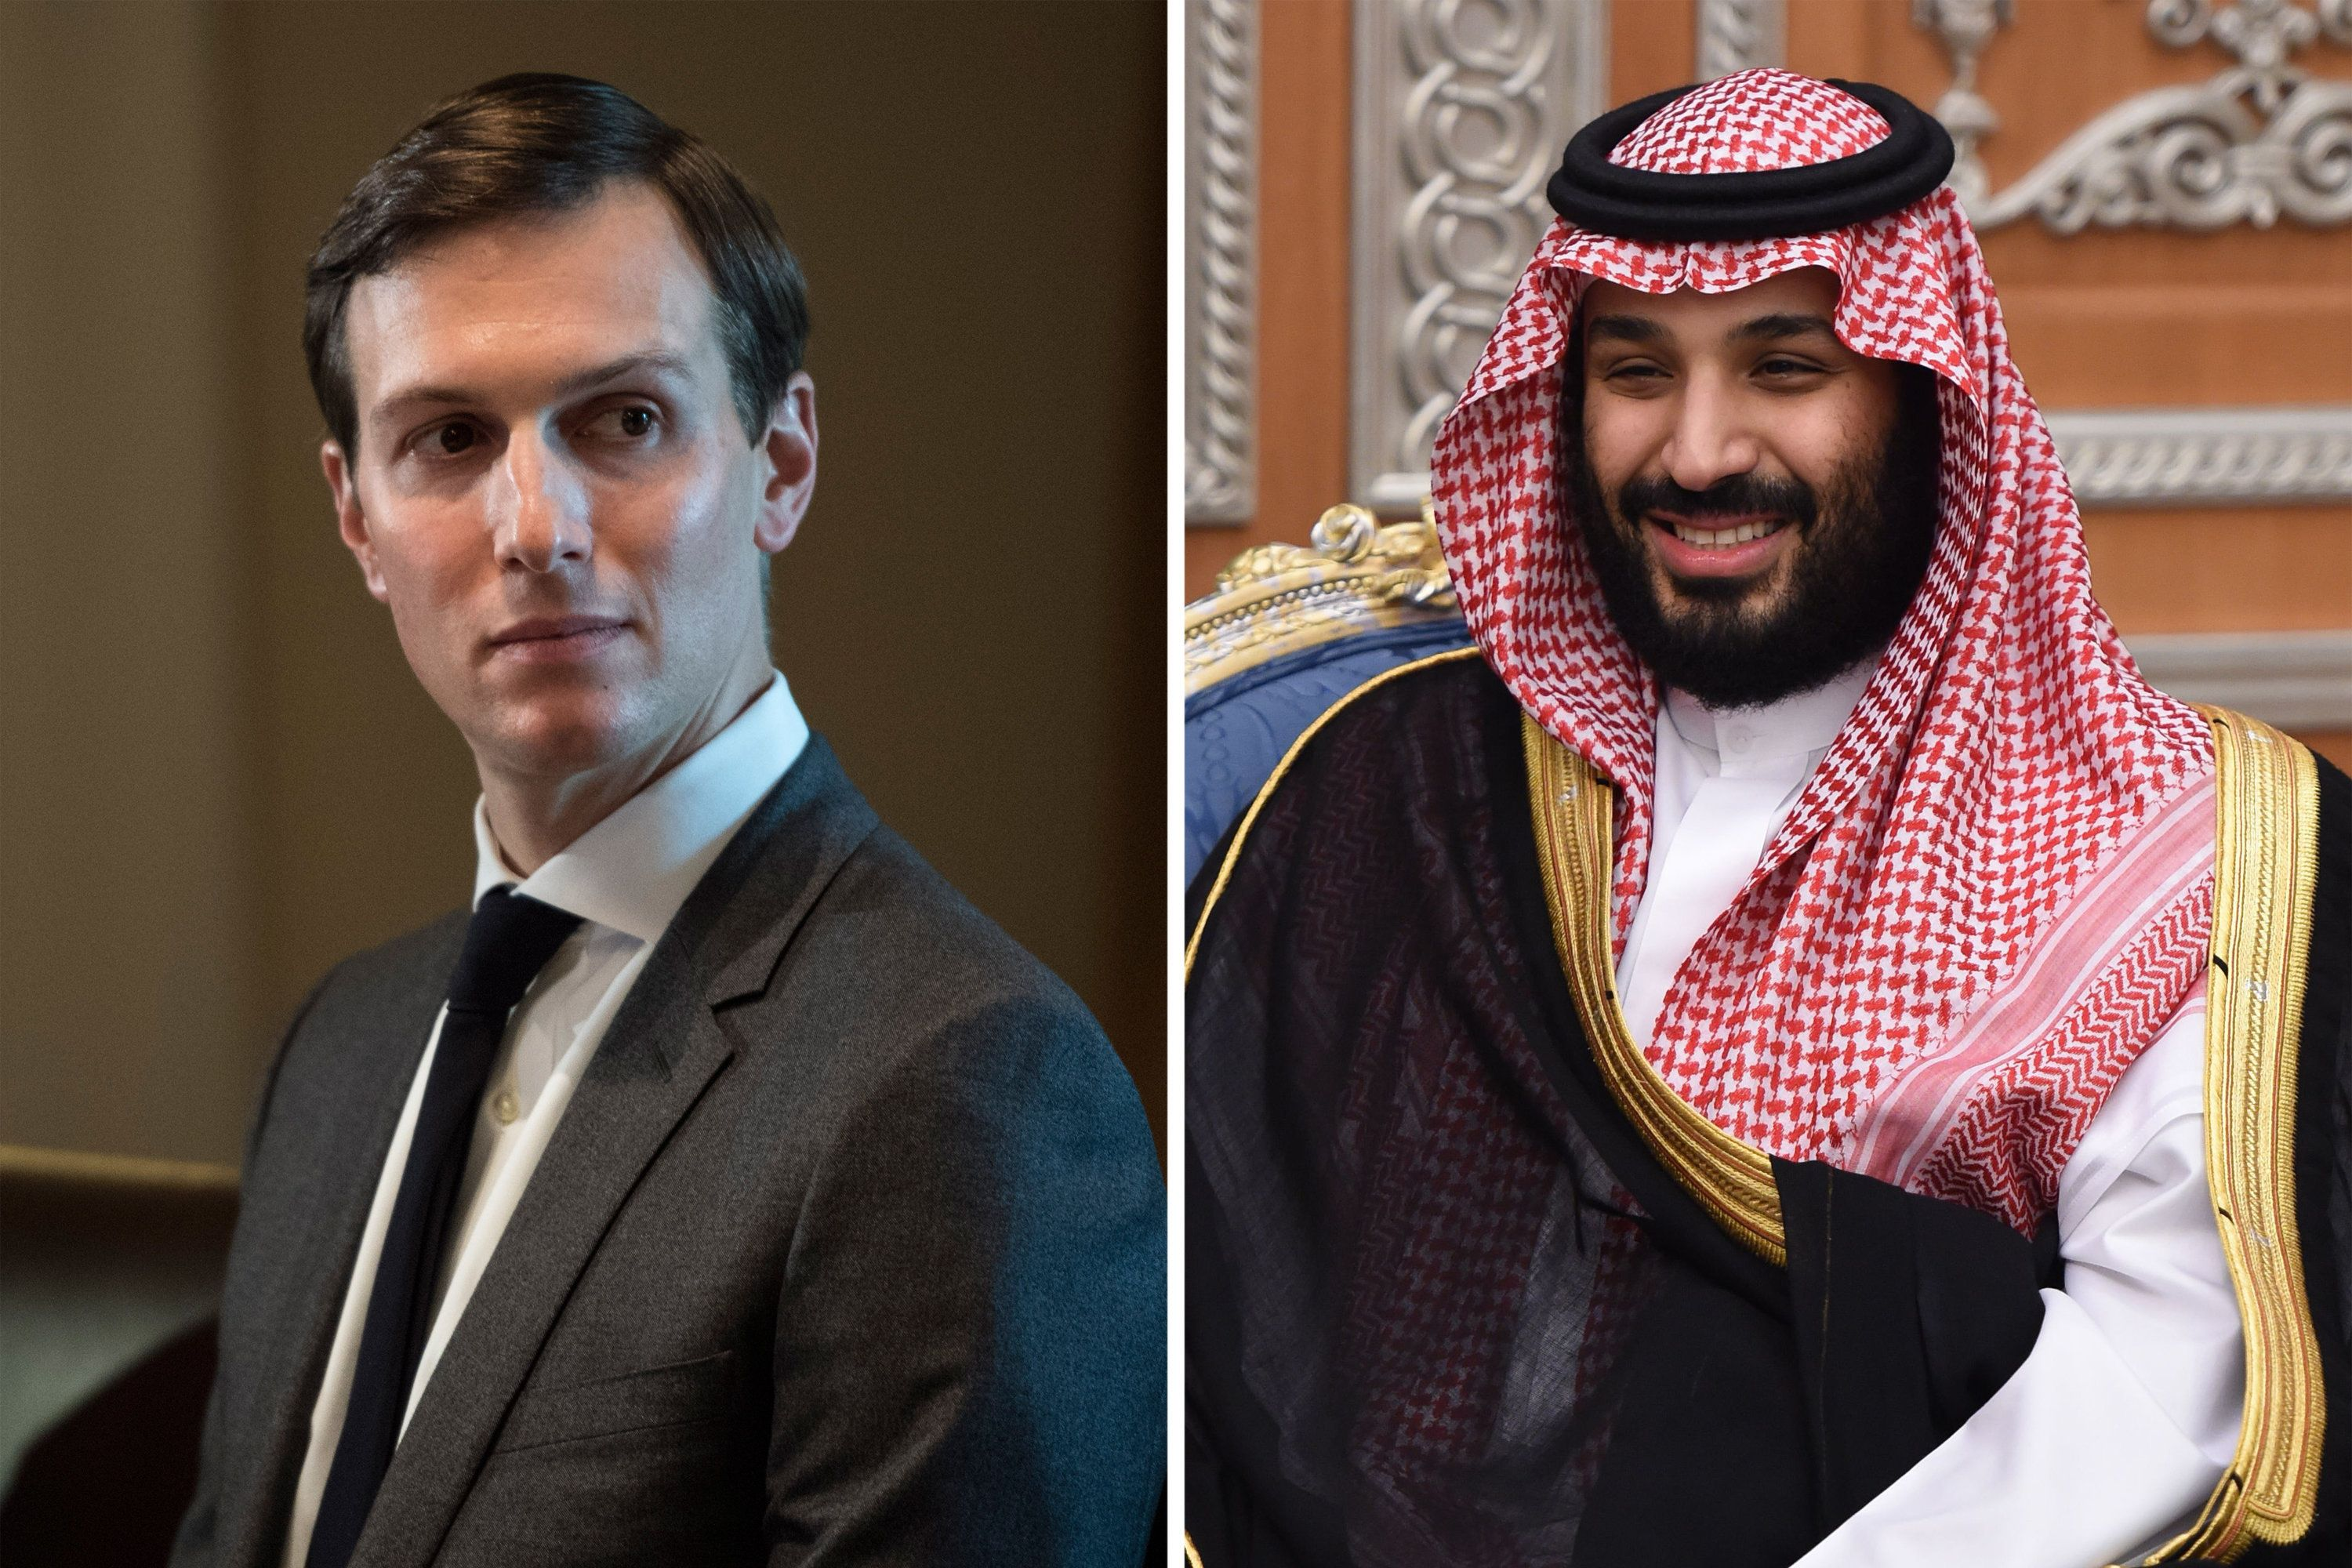 White House Senior Adviser Jared Kushner during a meeting in the Cabinet Room at the White House in Washington, DC on Monday, Oct. 23, 2017. Right: Saudi Crown Prince Mohammed bin Salman attends a meeting with Lebanon's Christian Maronite patriarch on November 14, 2017, in Riyadh, Saudi Arabia. (Photos by Jabin Botsford/The Washington Post via Getty Images; Fayez Nureldine/AFP/Getty Images)